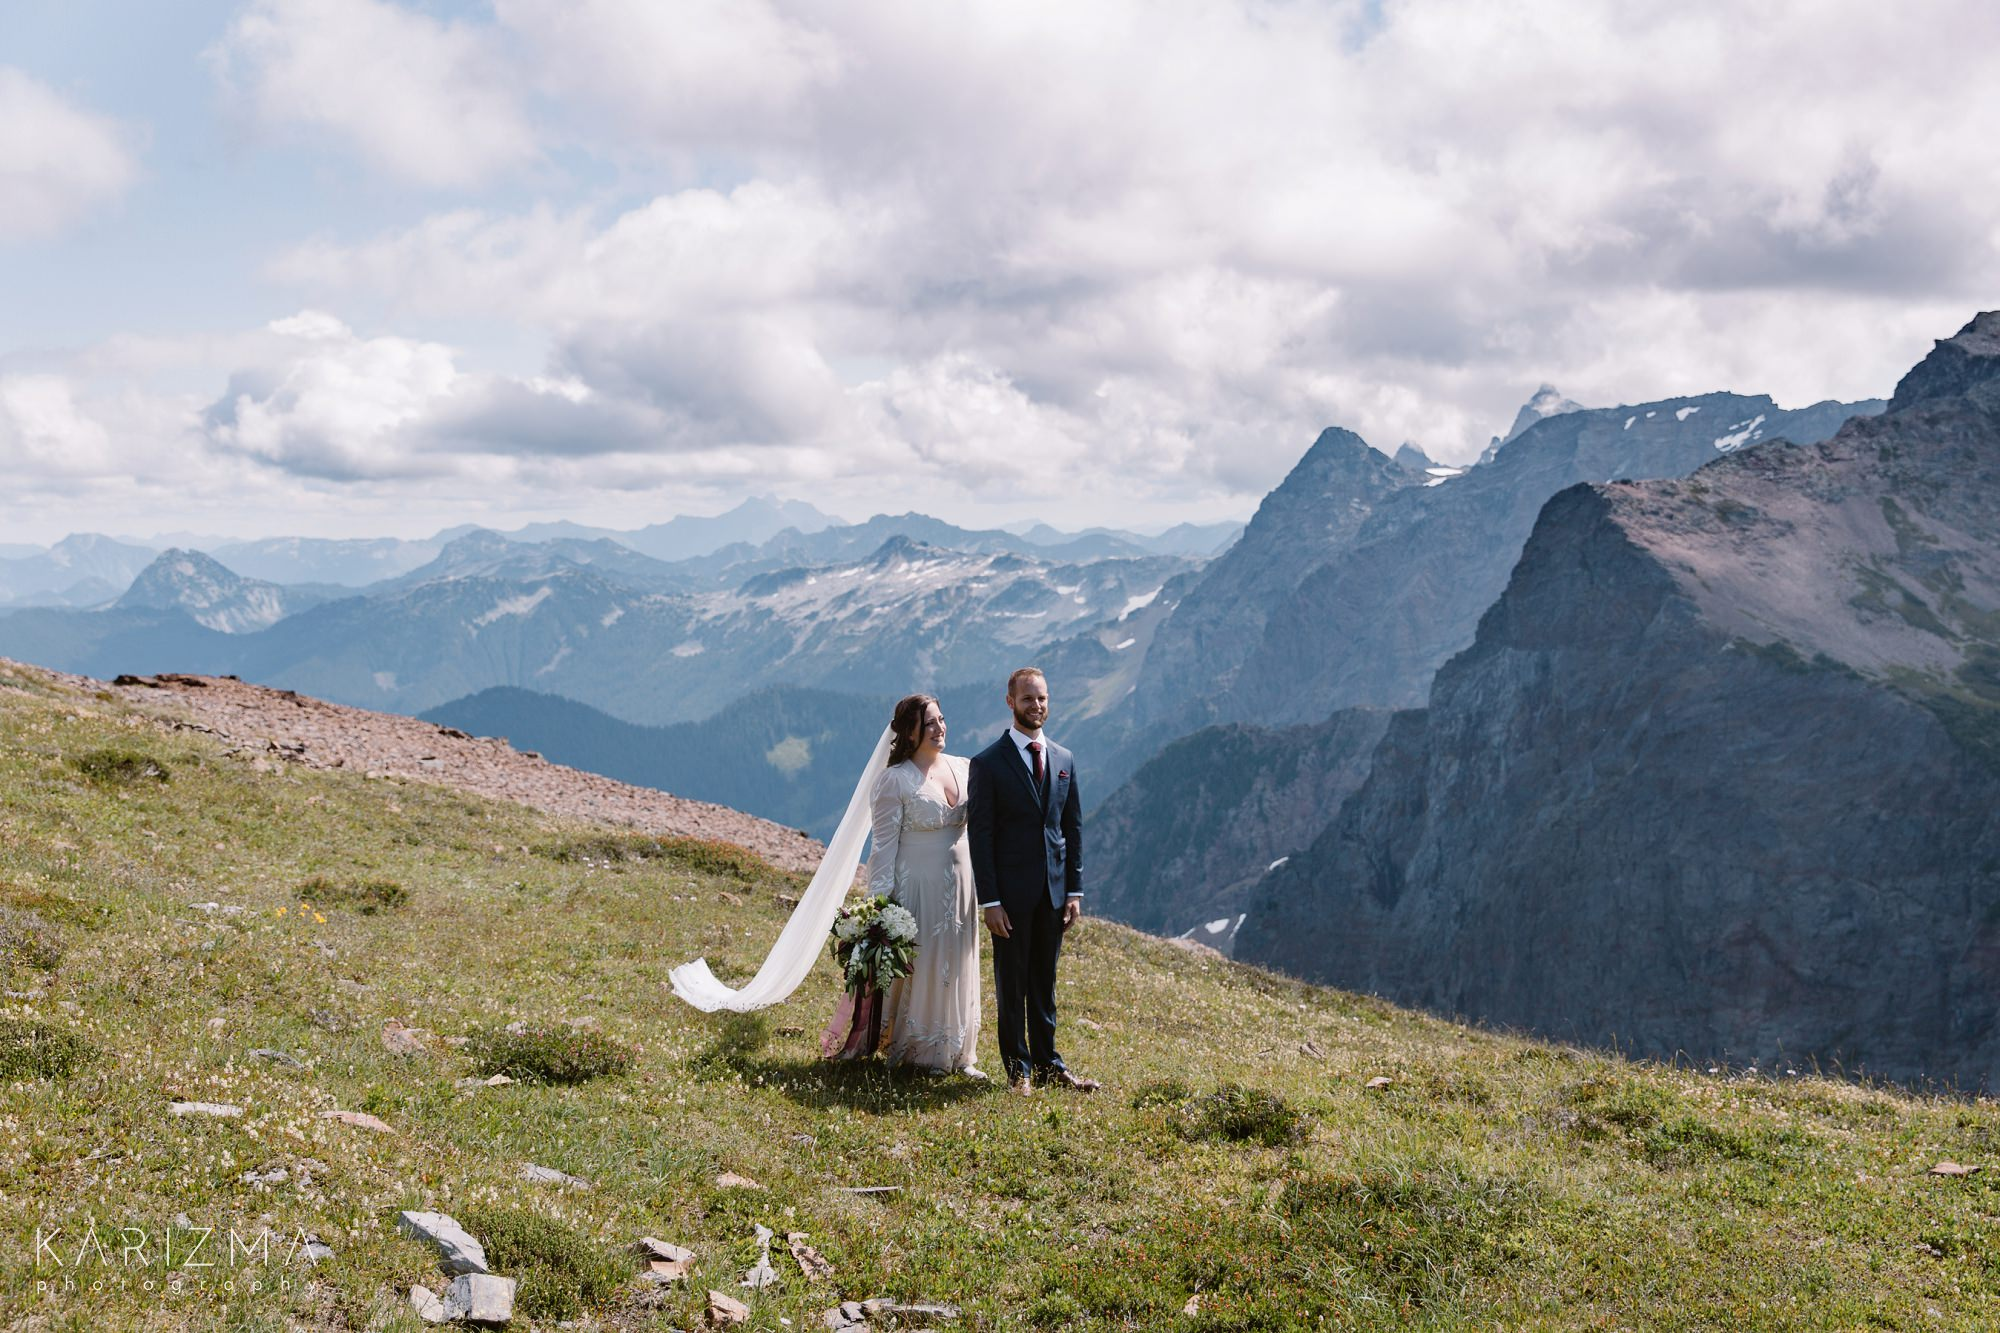 First look of the bride in groom in the mountains of British Columbia